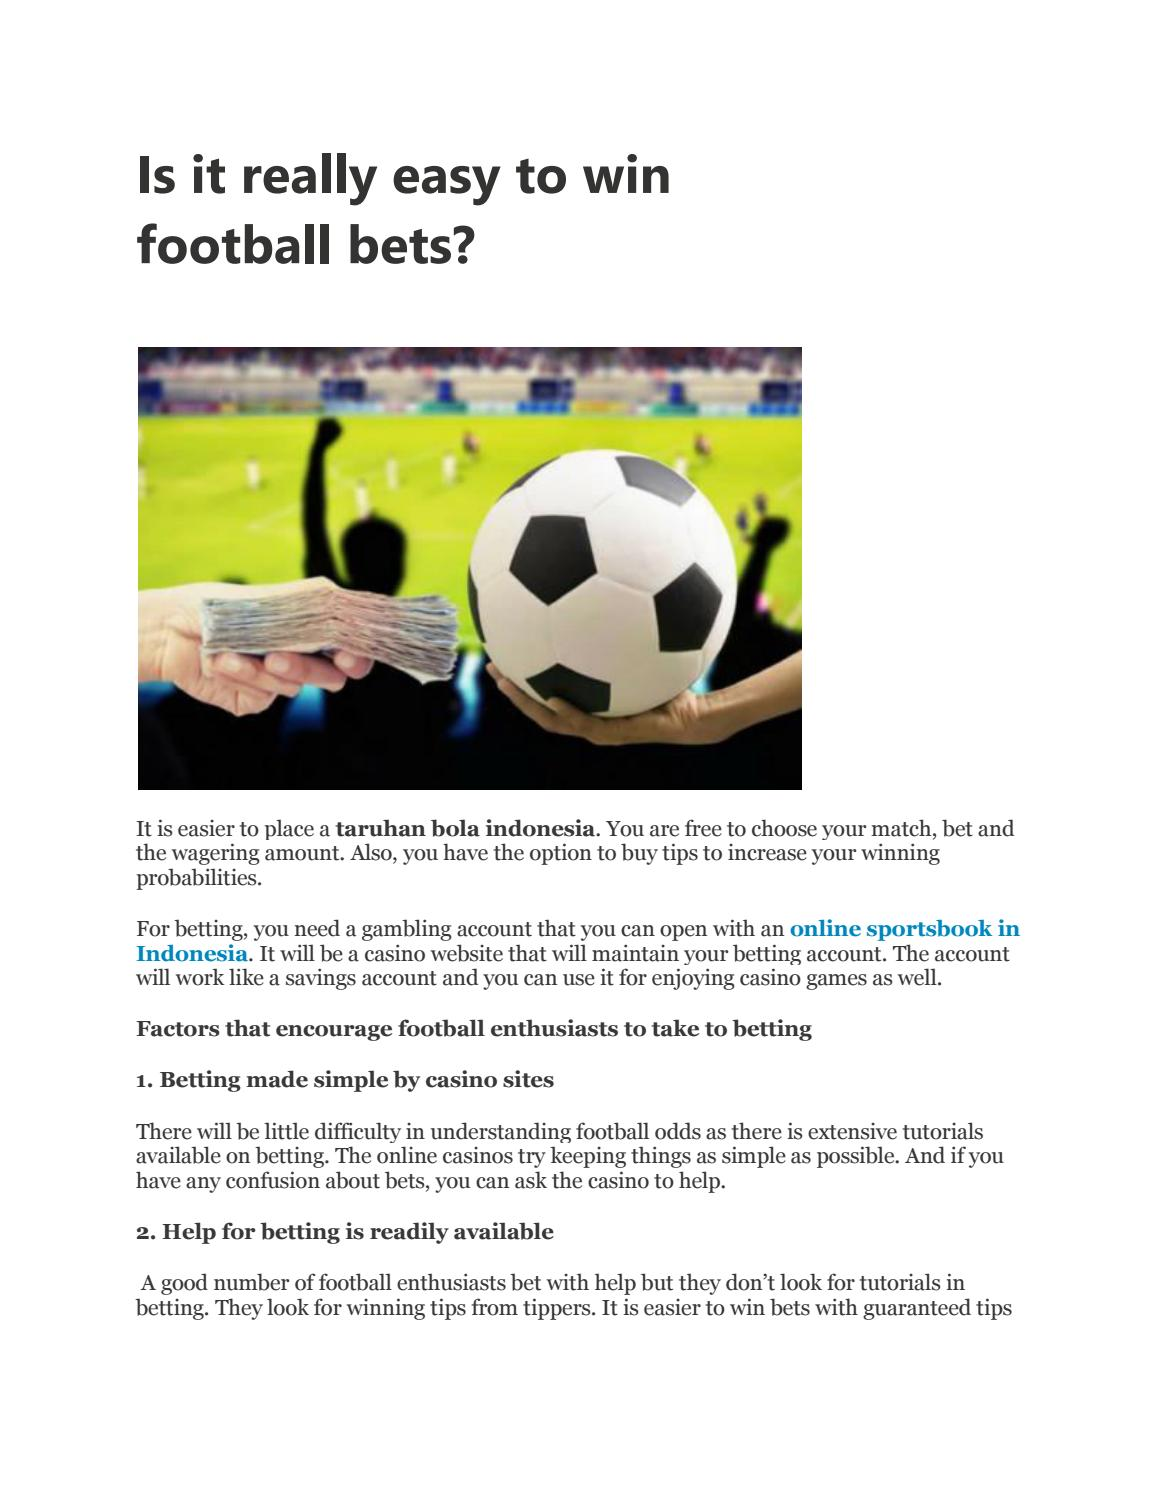 Understanding football online betting betting ooparts